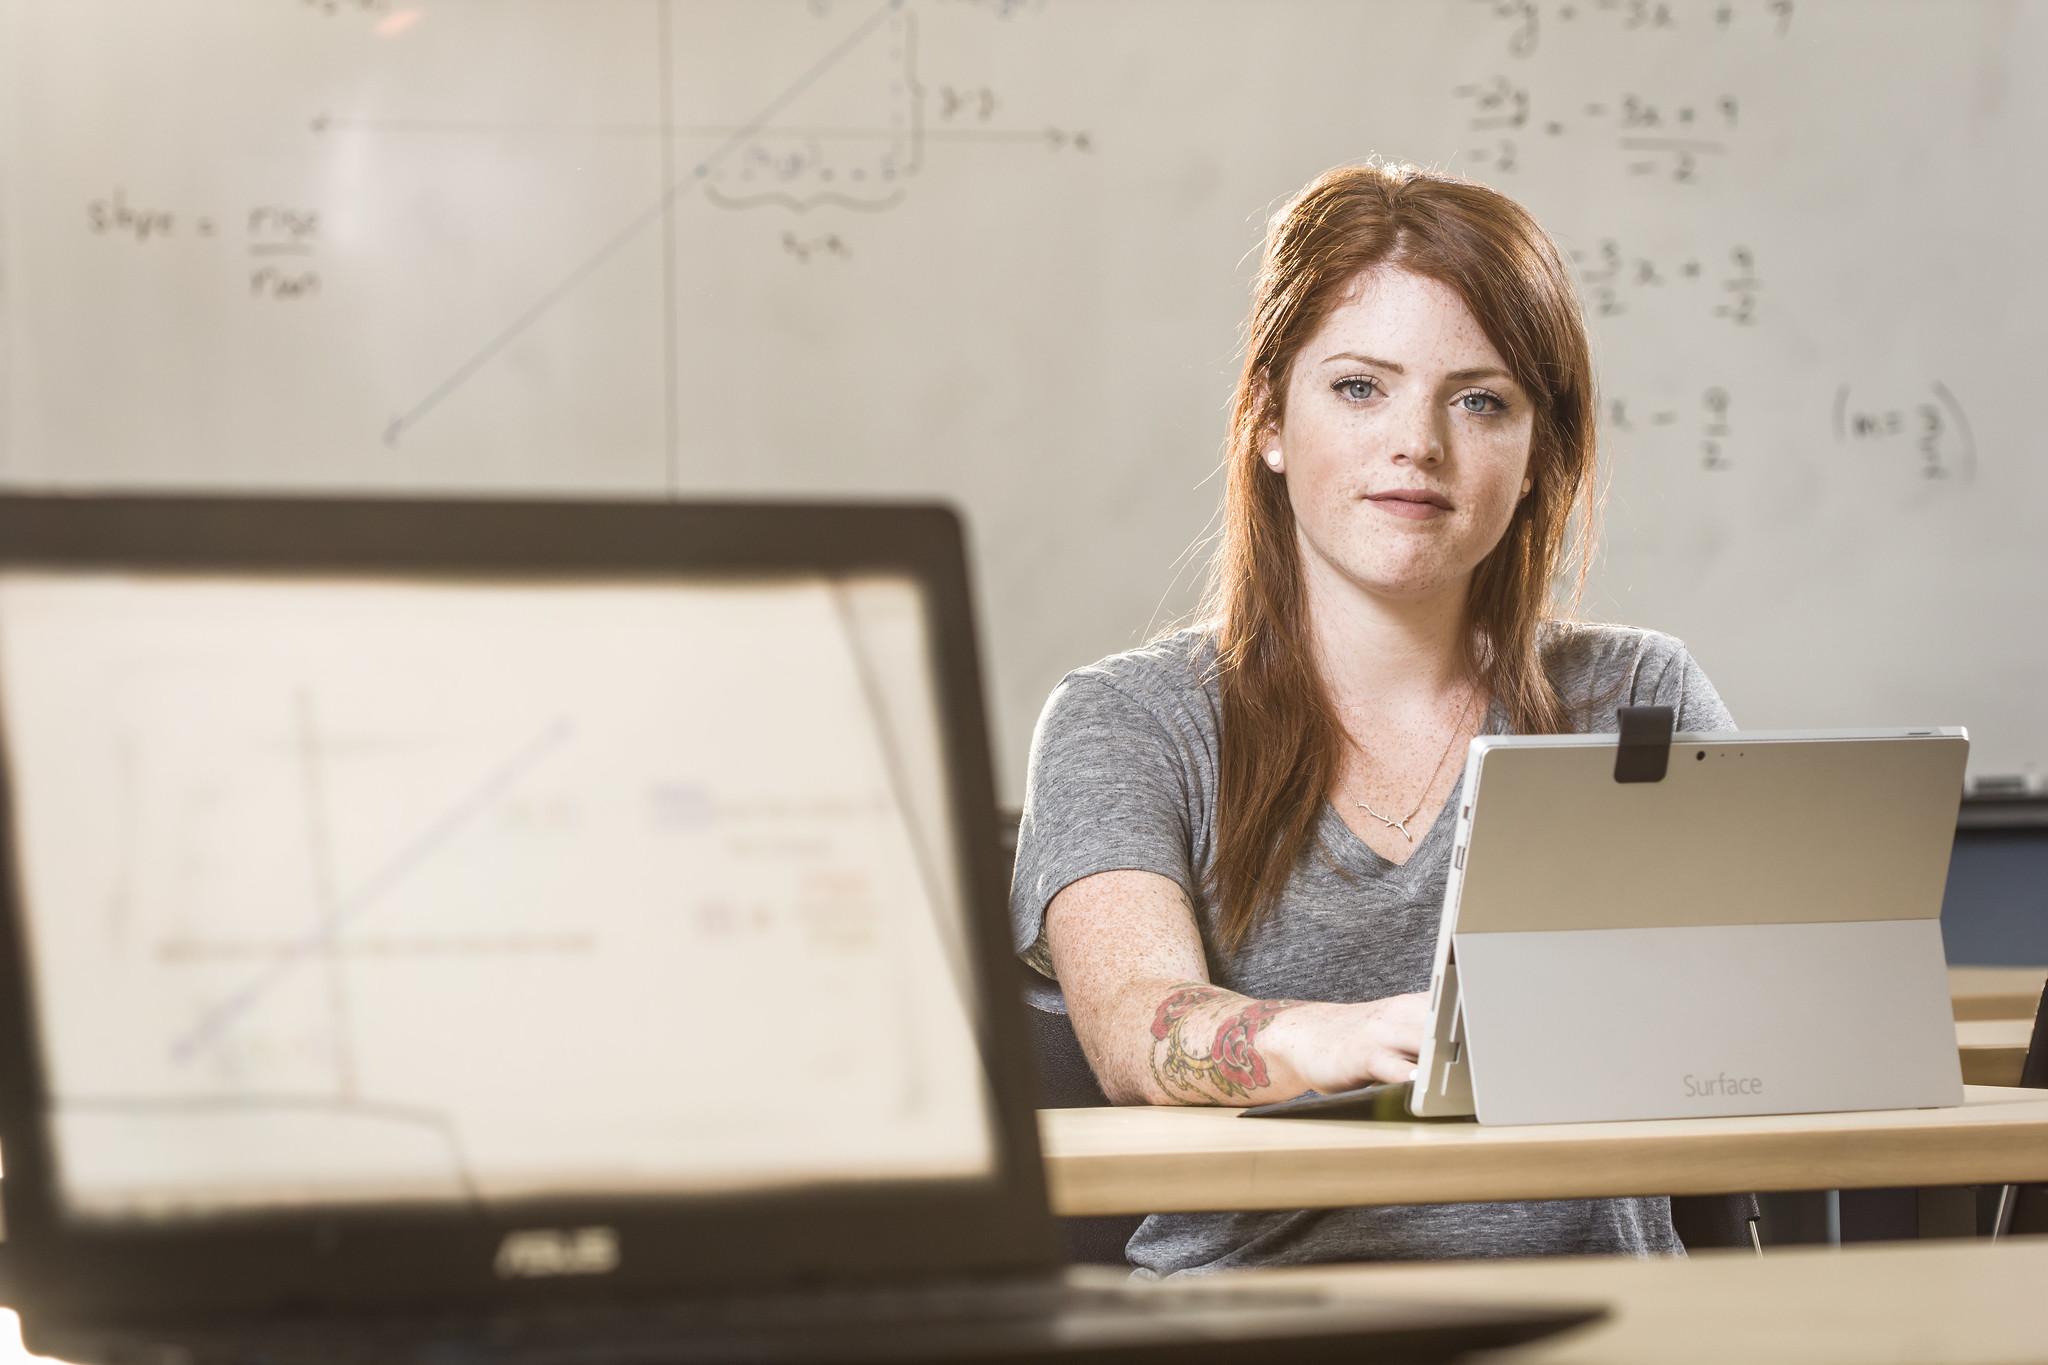 Upgrading female math student